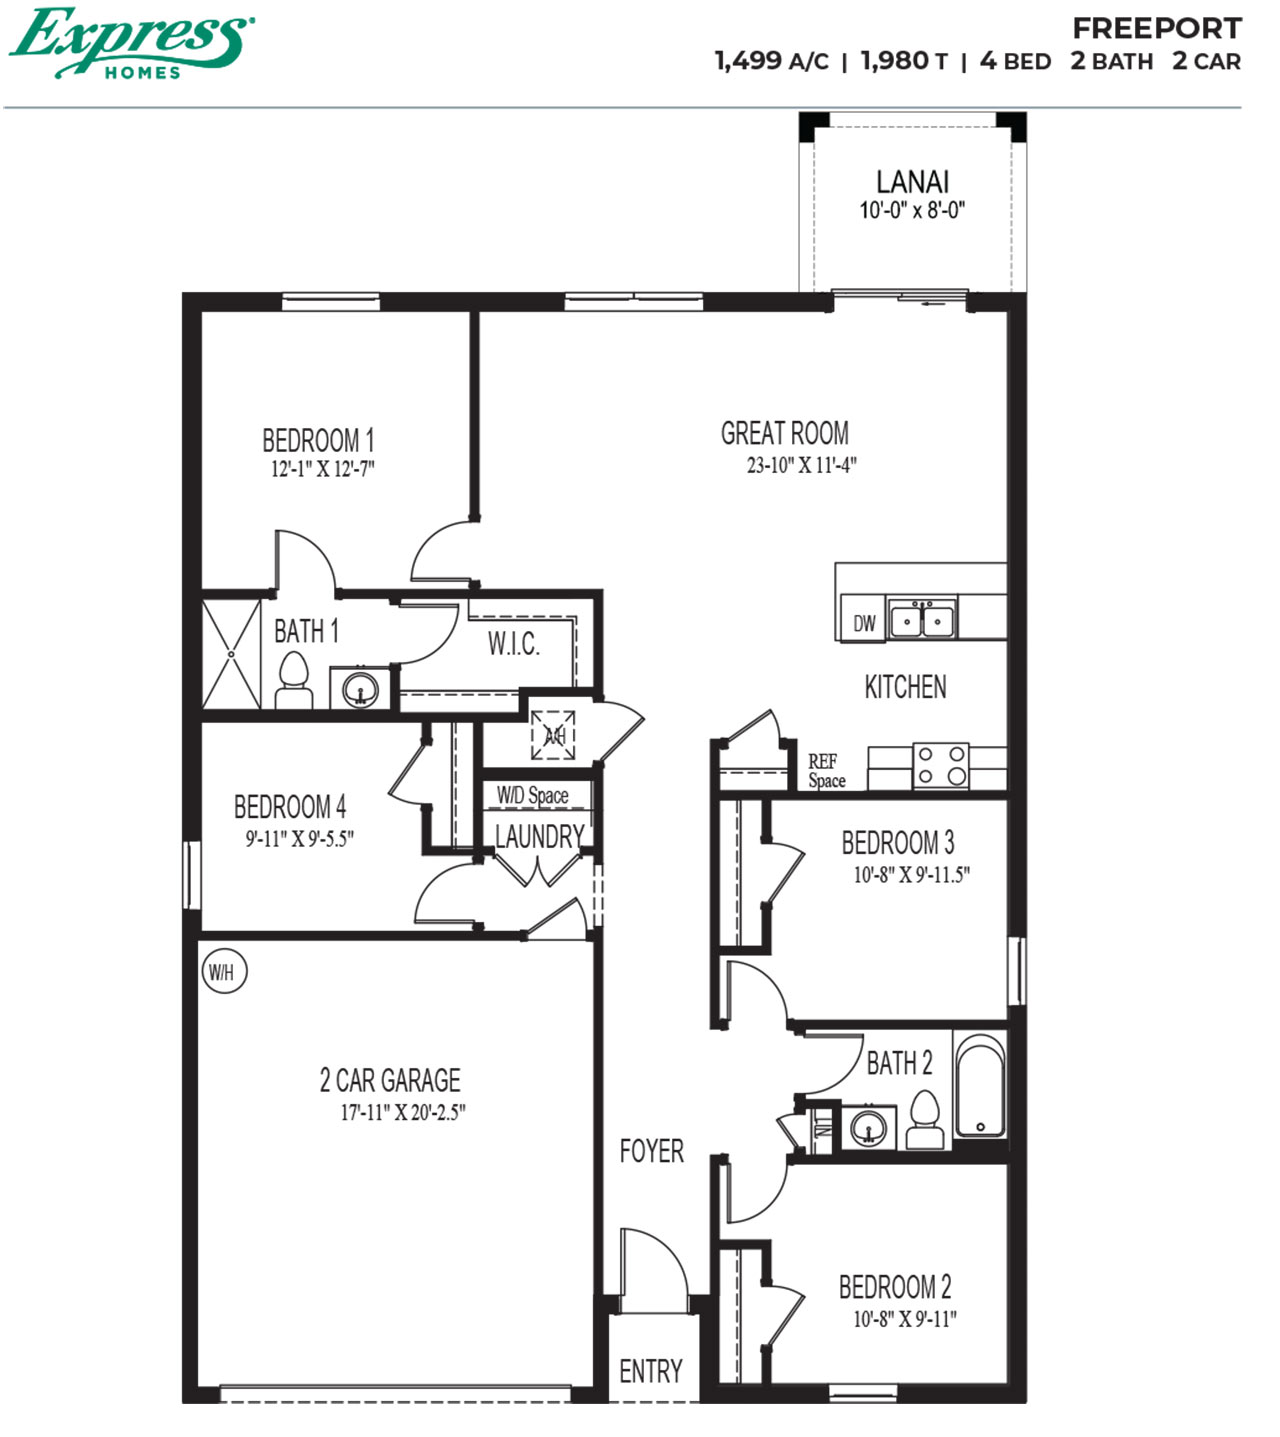 New Homes In Express River Club 1 Port Charlotte Fl Express